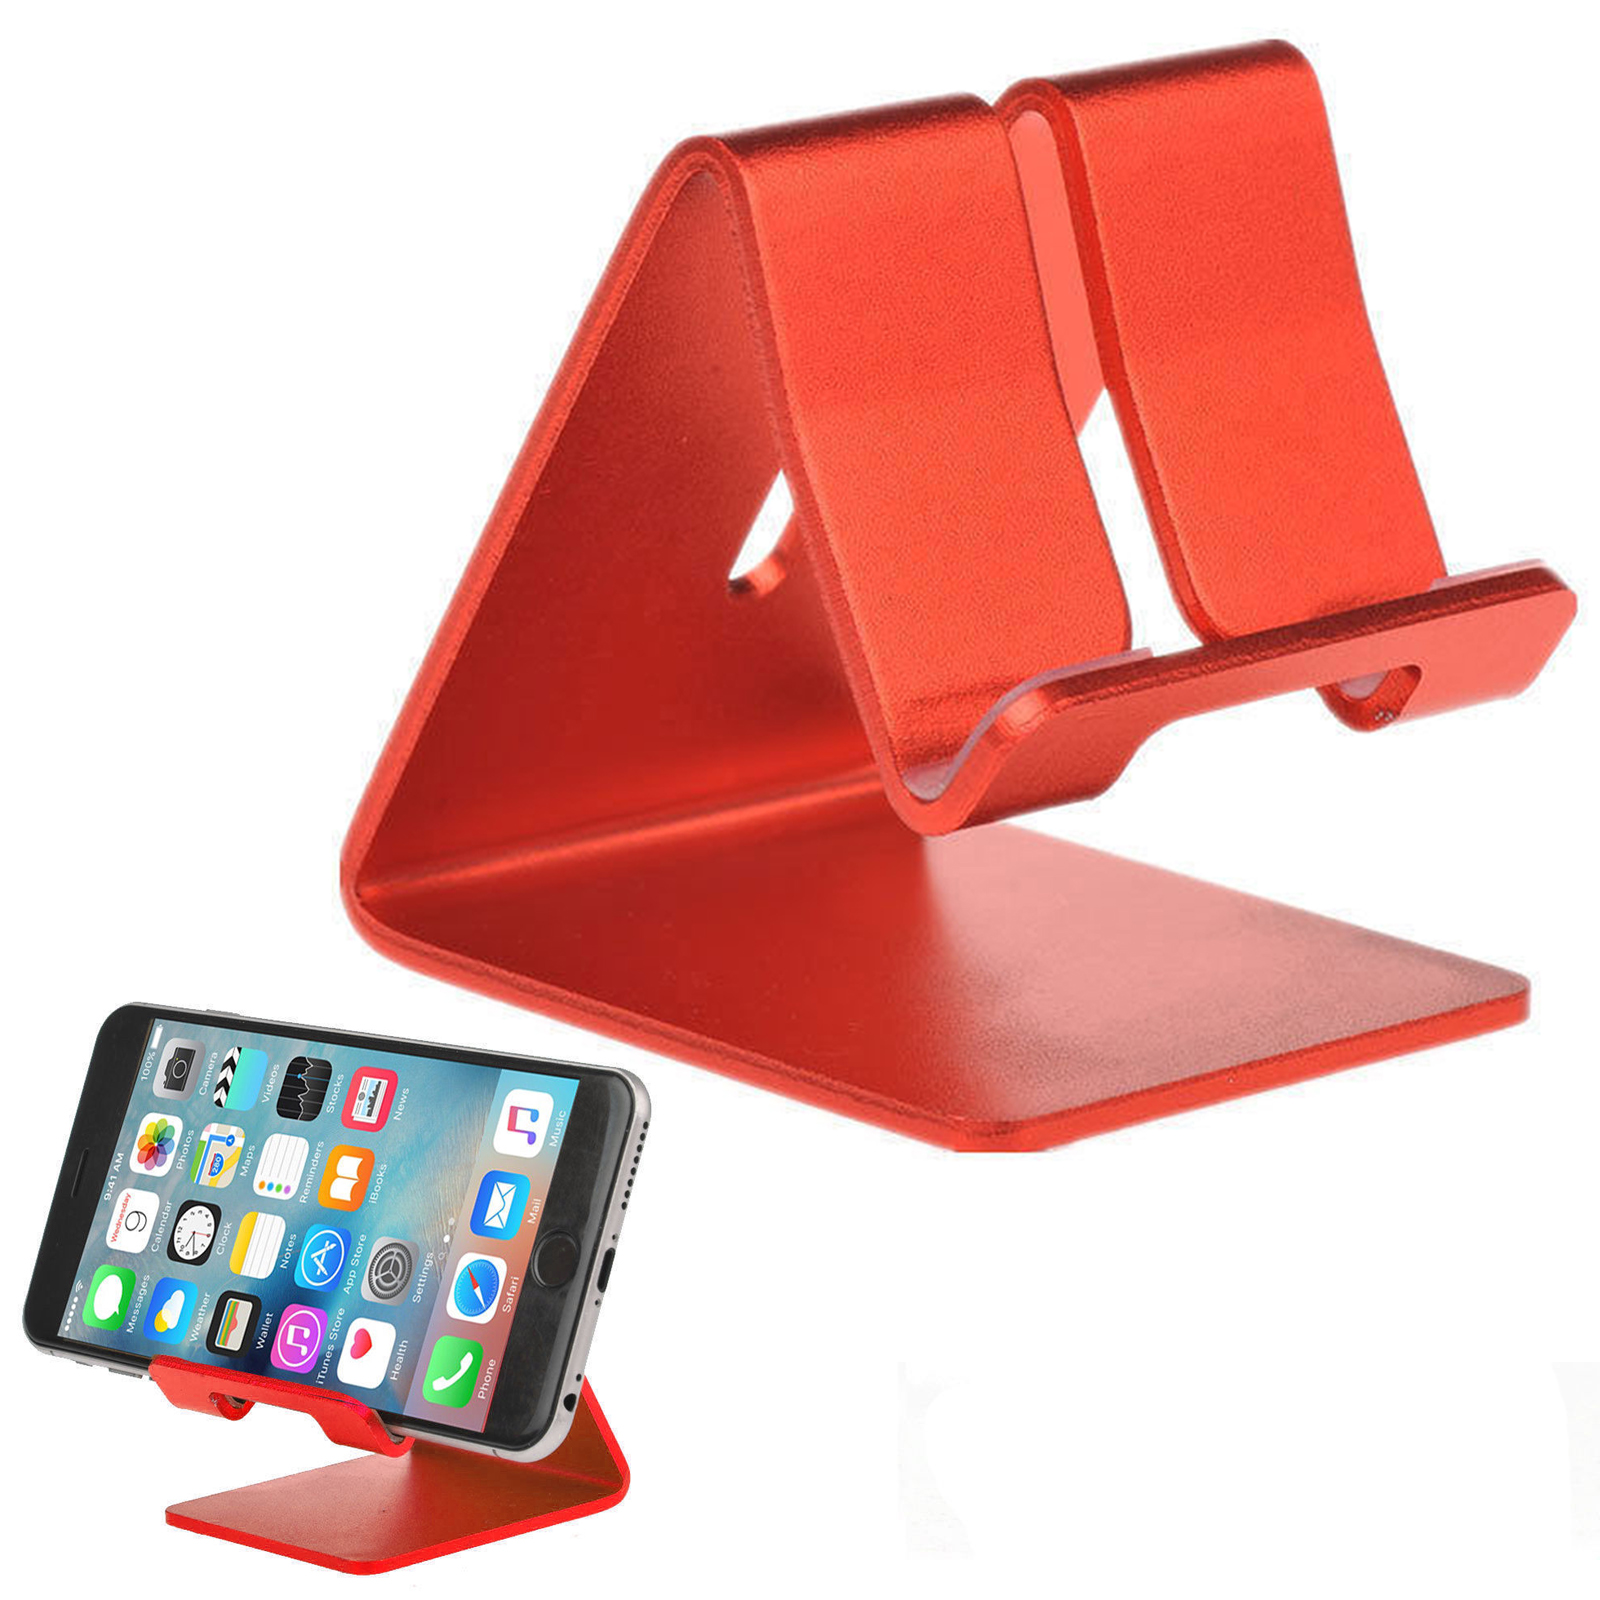 Universal Cell Phone Holder, Desk Charger Stand Mount, Alloy Aluminum Metal  Surface Cradle Charge